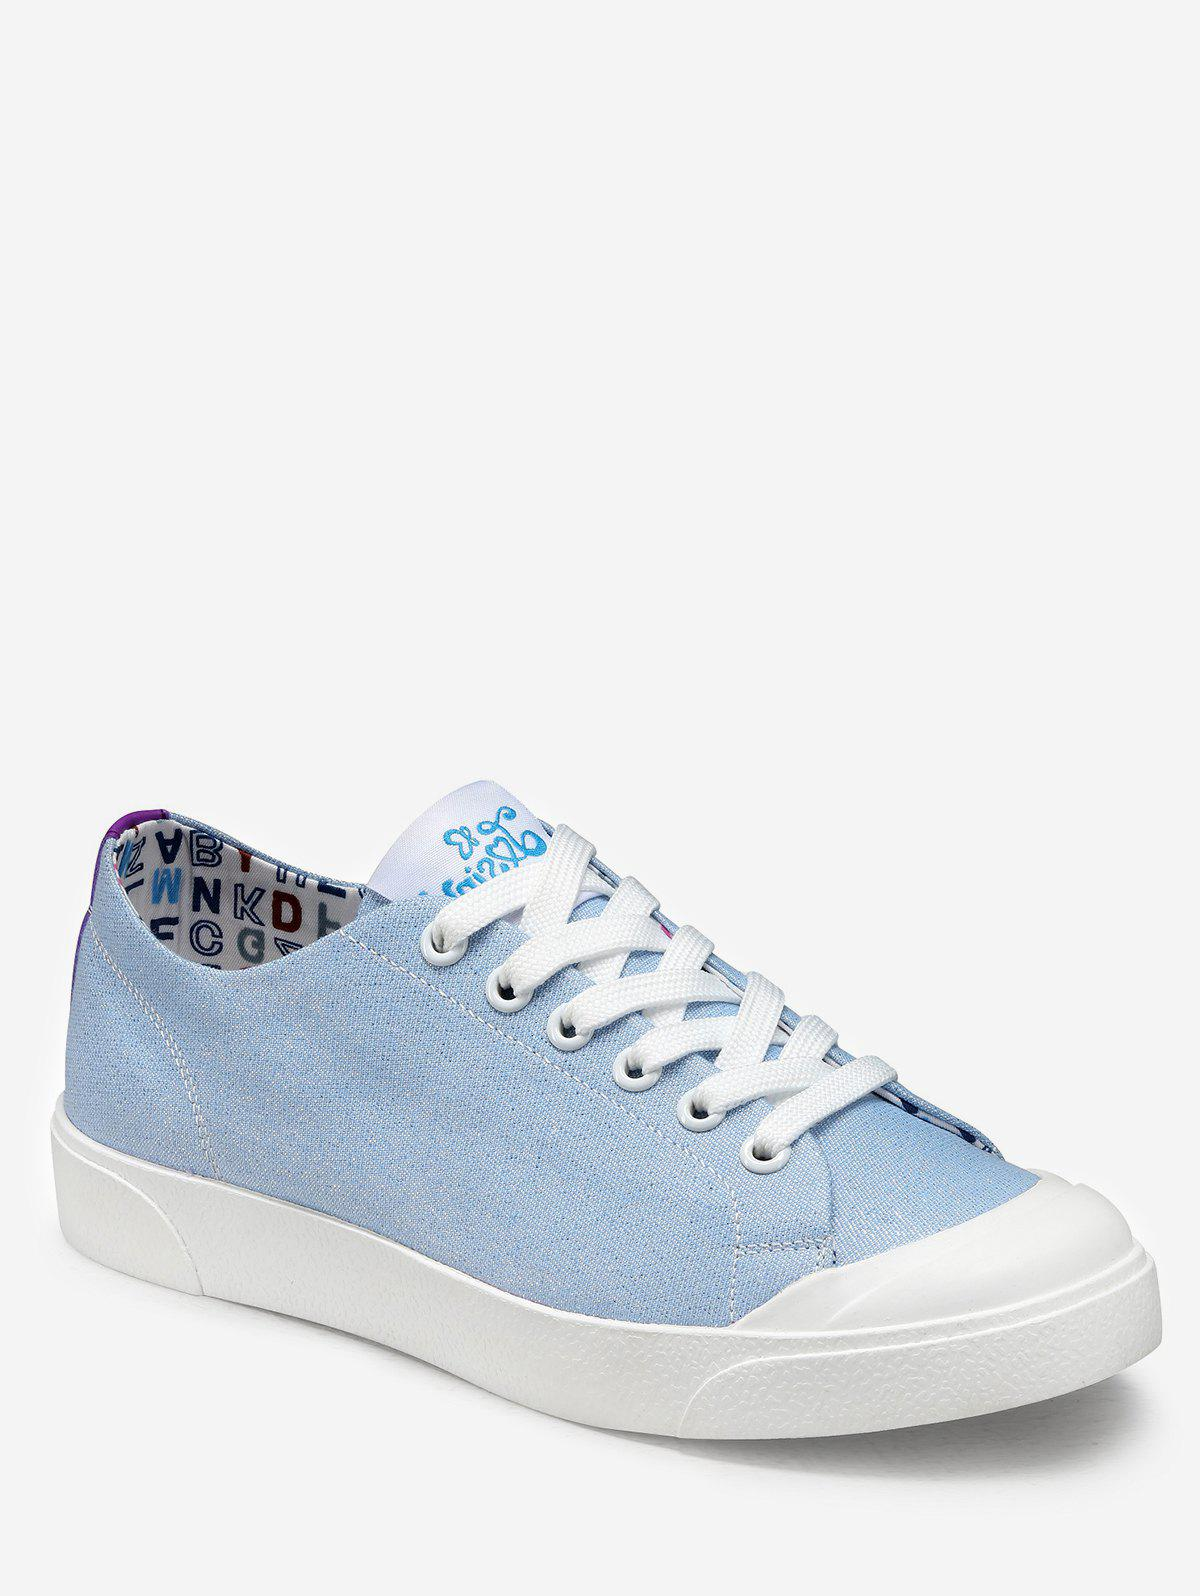 Fashion Glitter Lace Up Leisure Sneakers